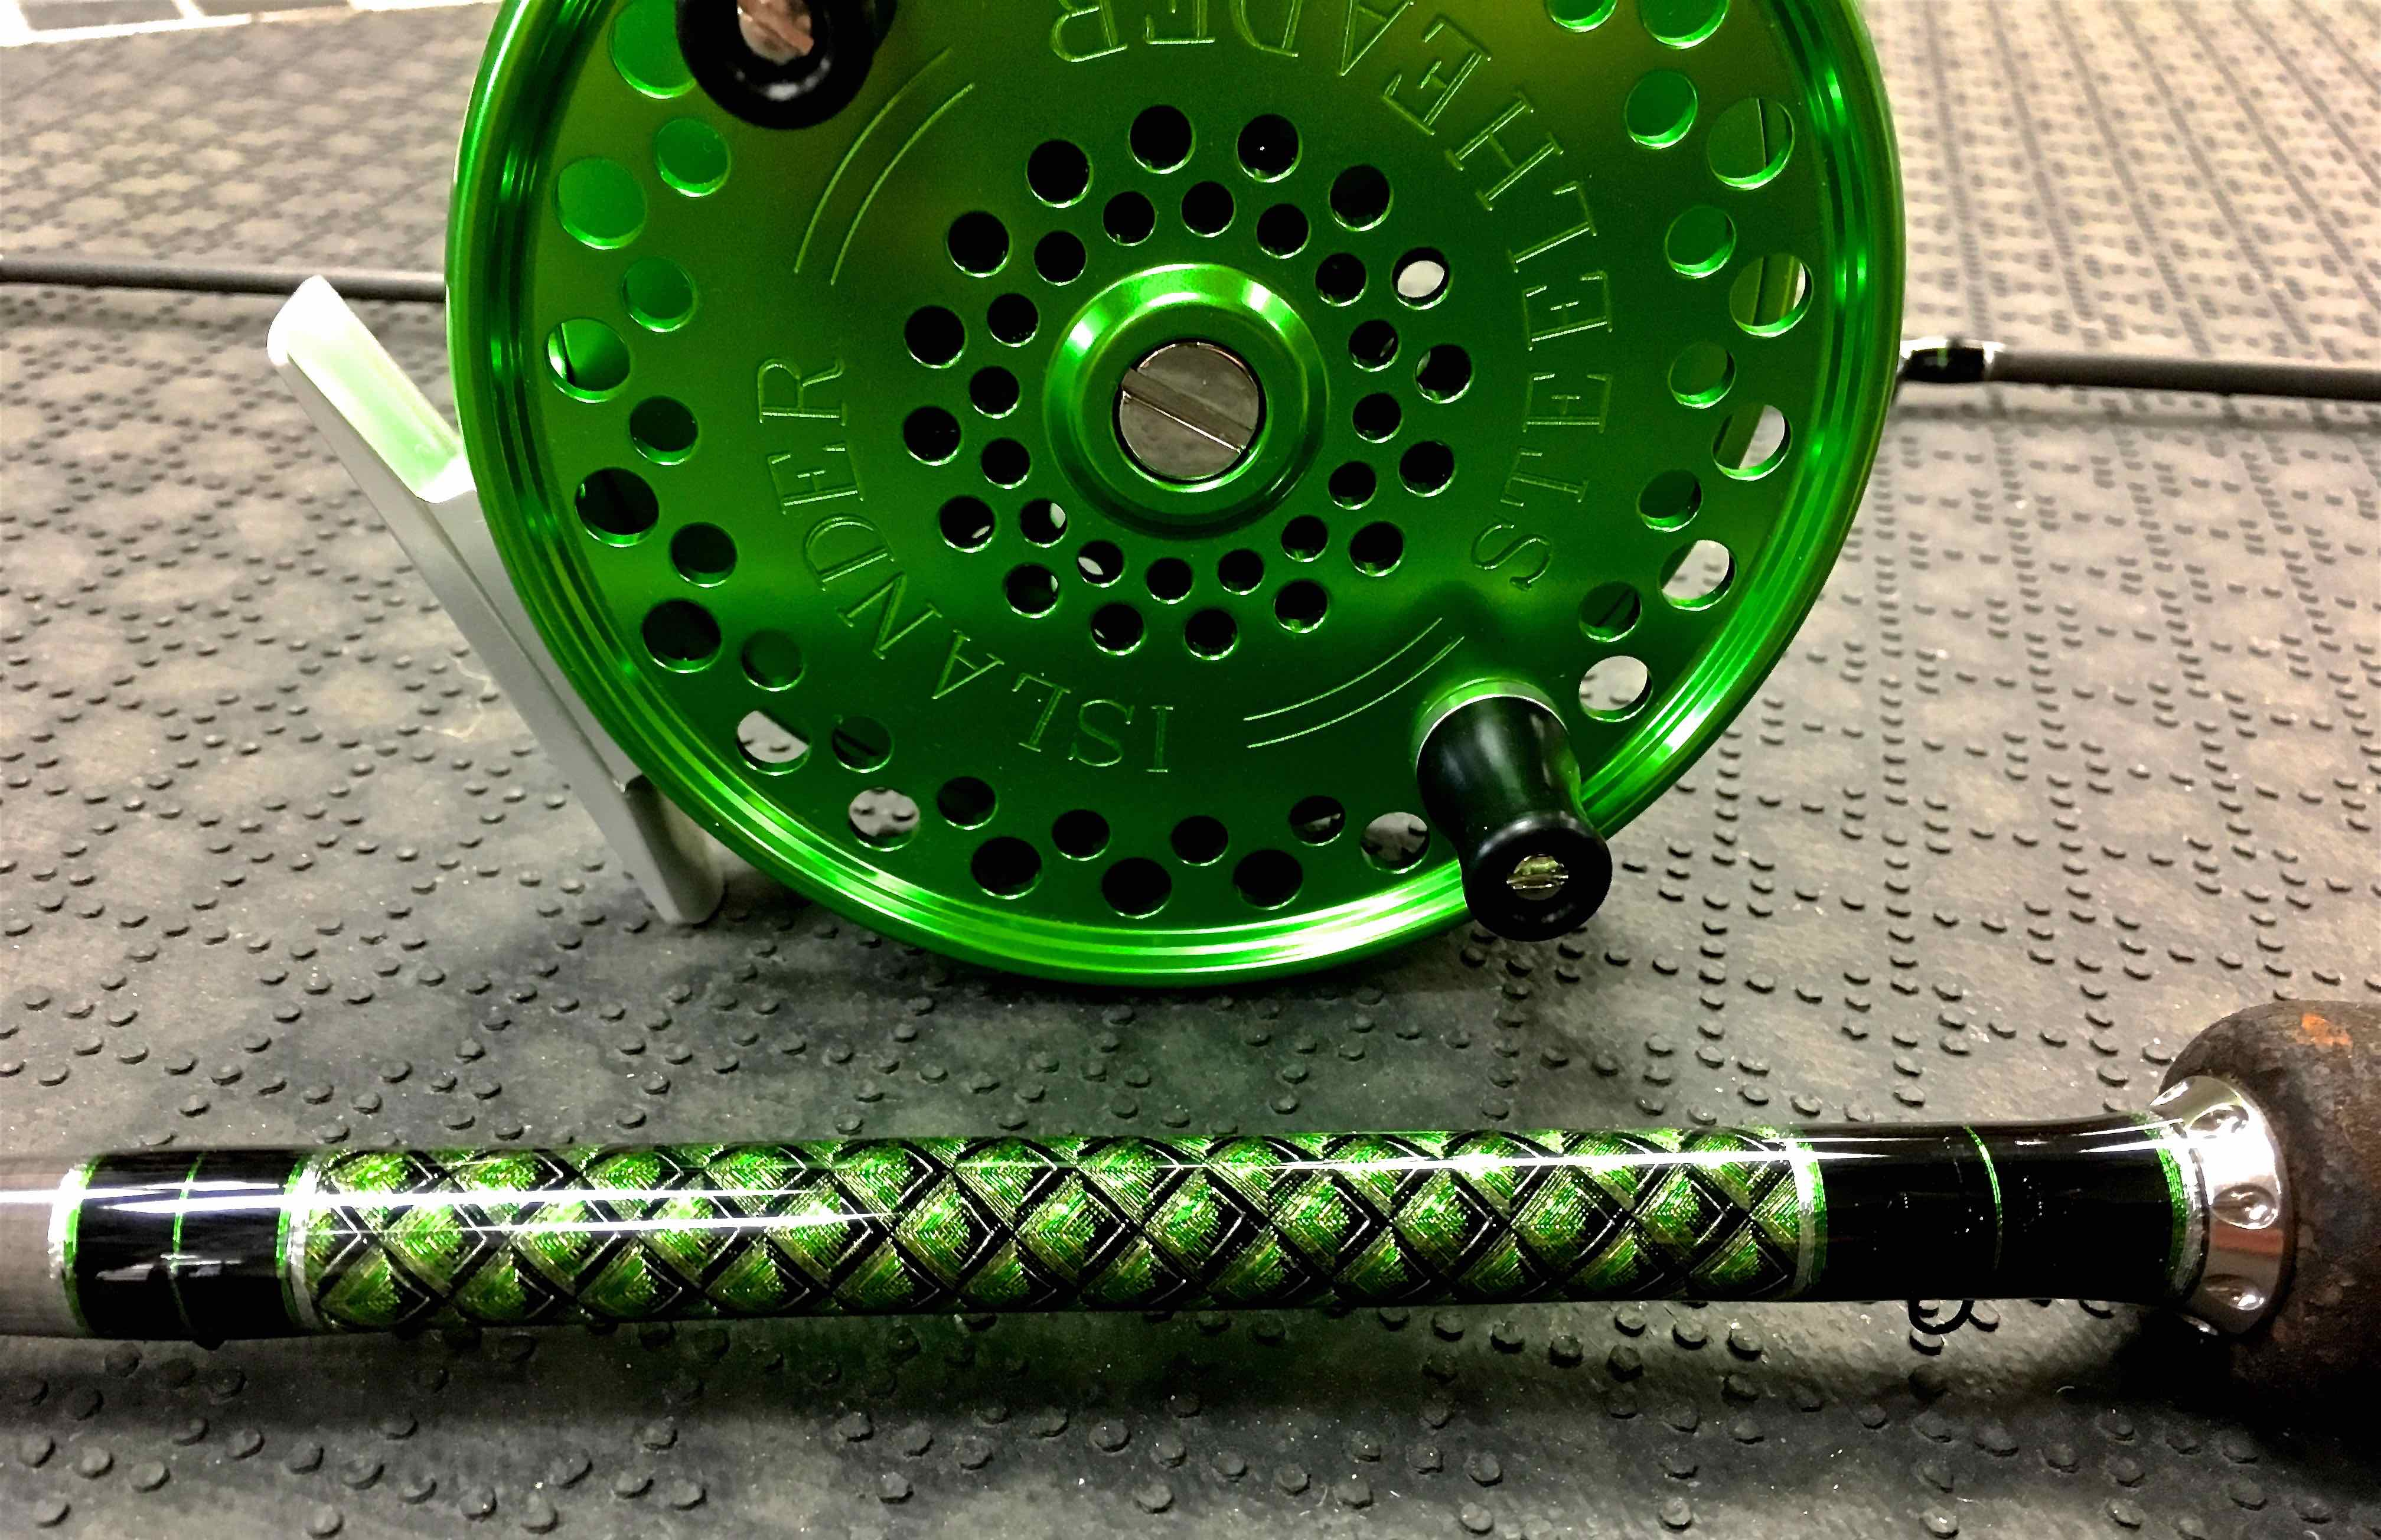 A Northfork Composites 1302HM with a Custom Butt Wrap and a Custom Green Islander Steelheader.